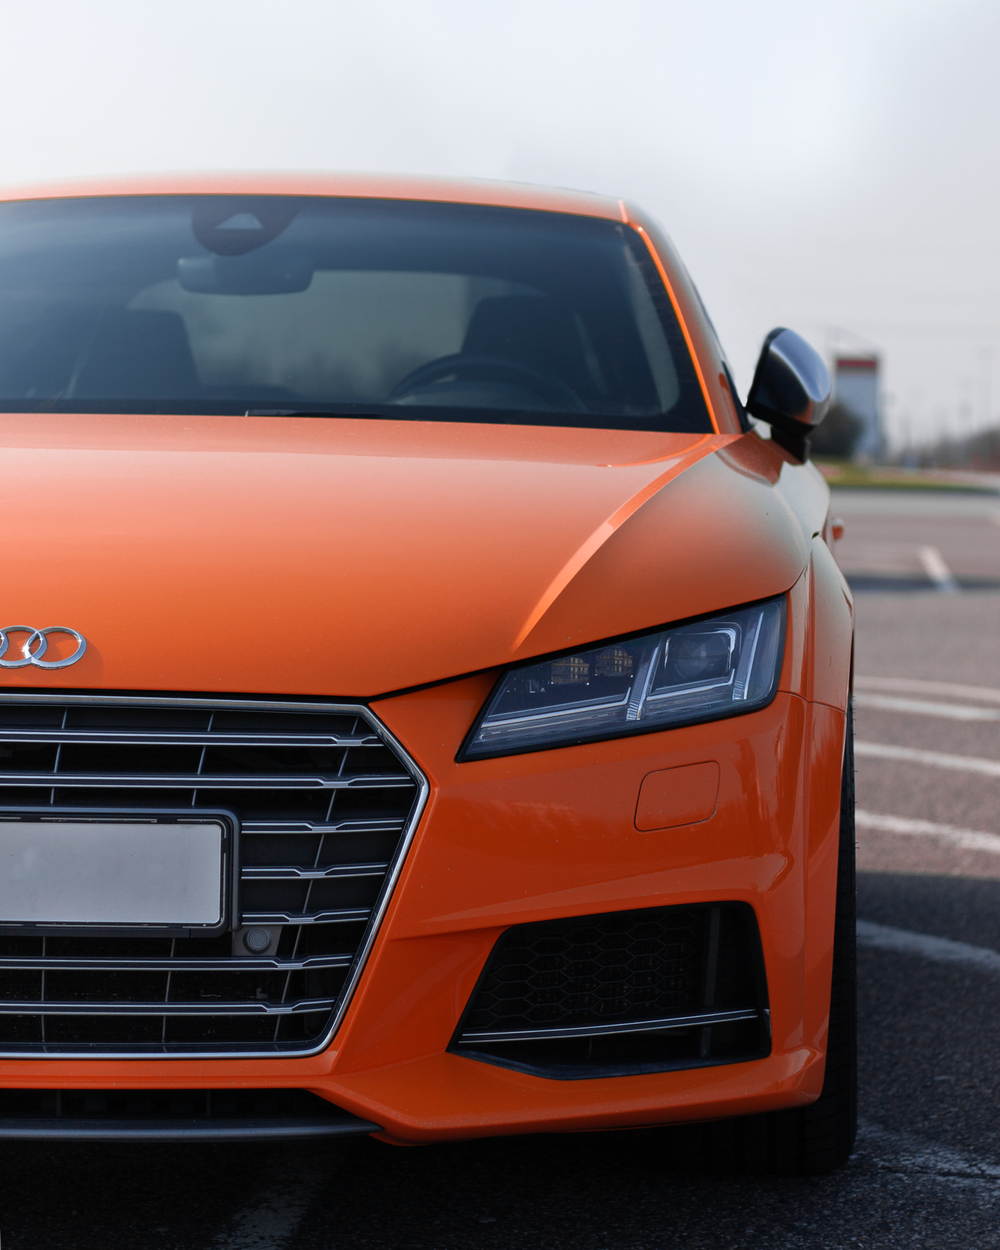 orange Audi vehicle